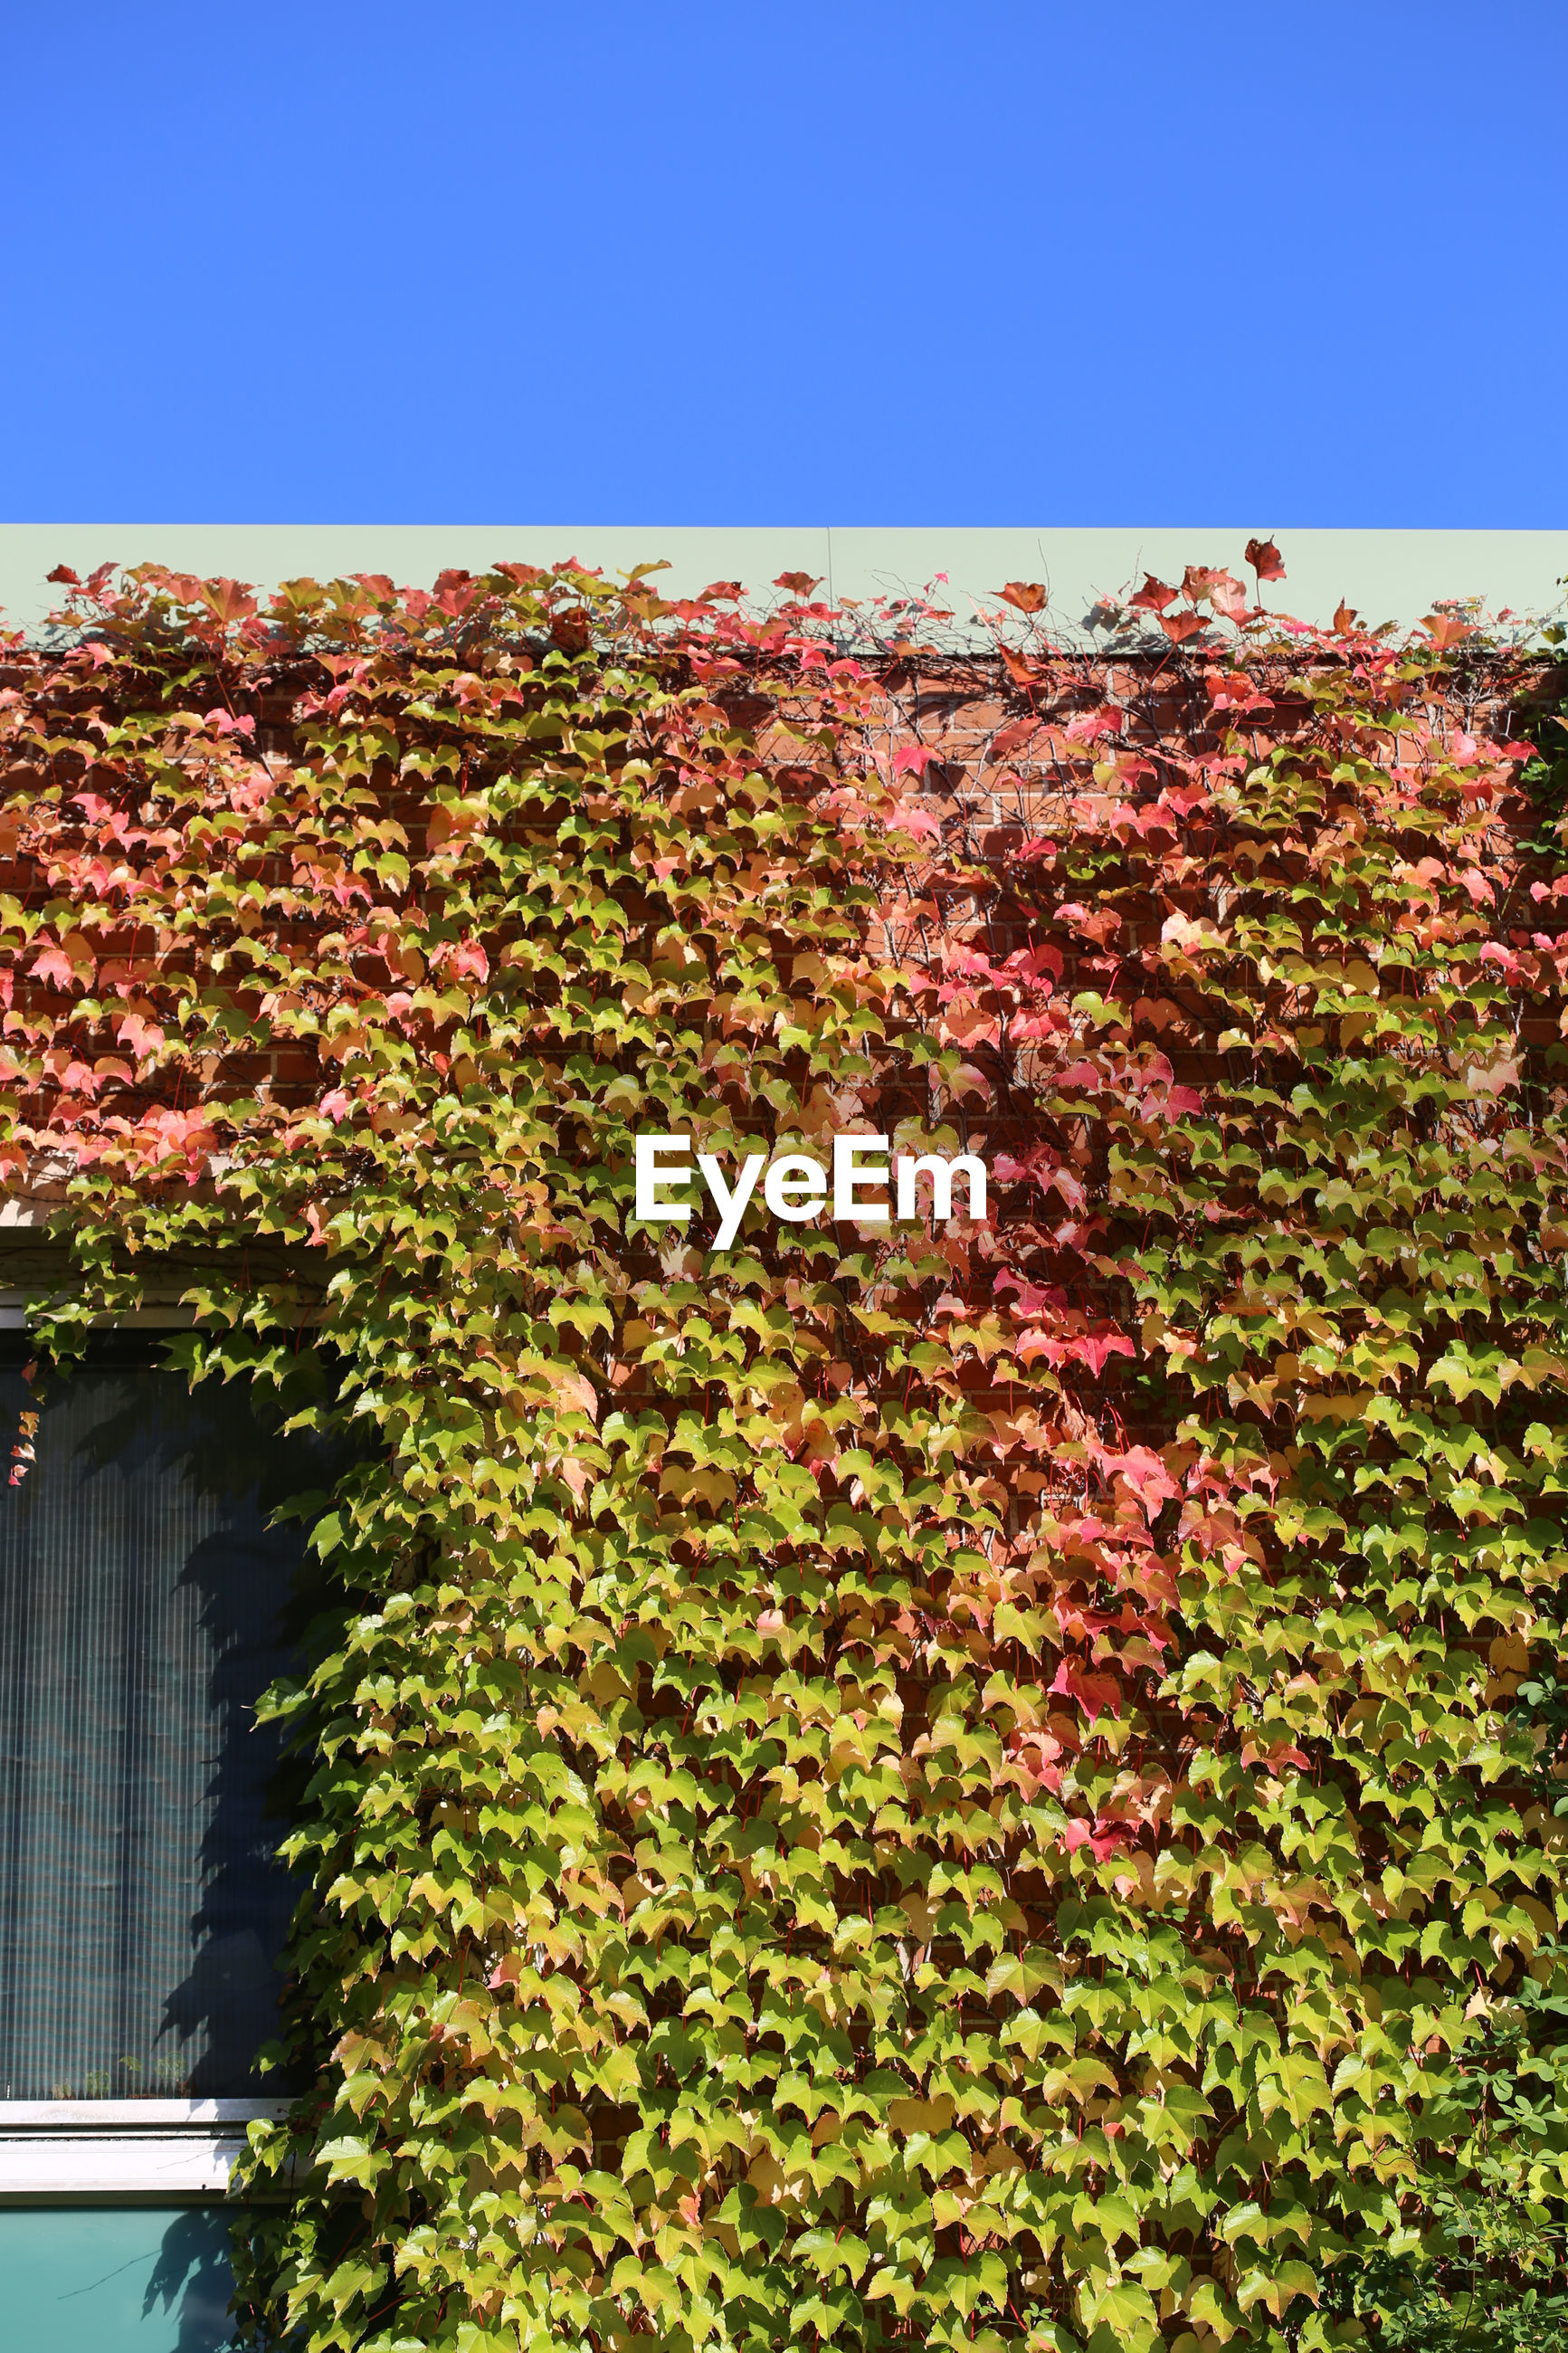 IVY GROWING ON PLANT AGAINST BUILDING